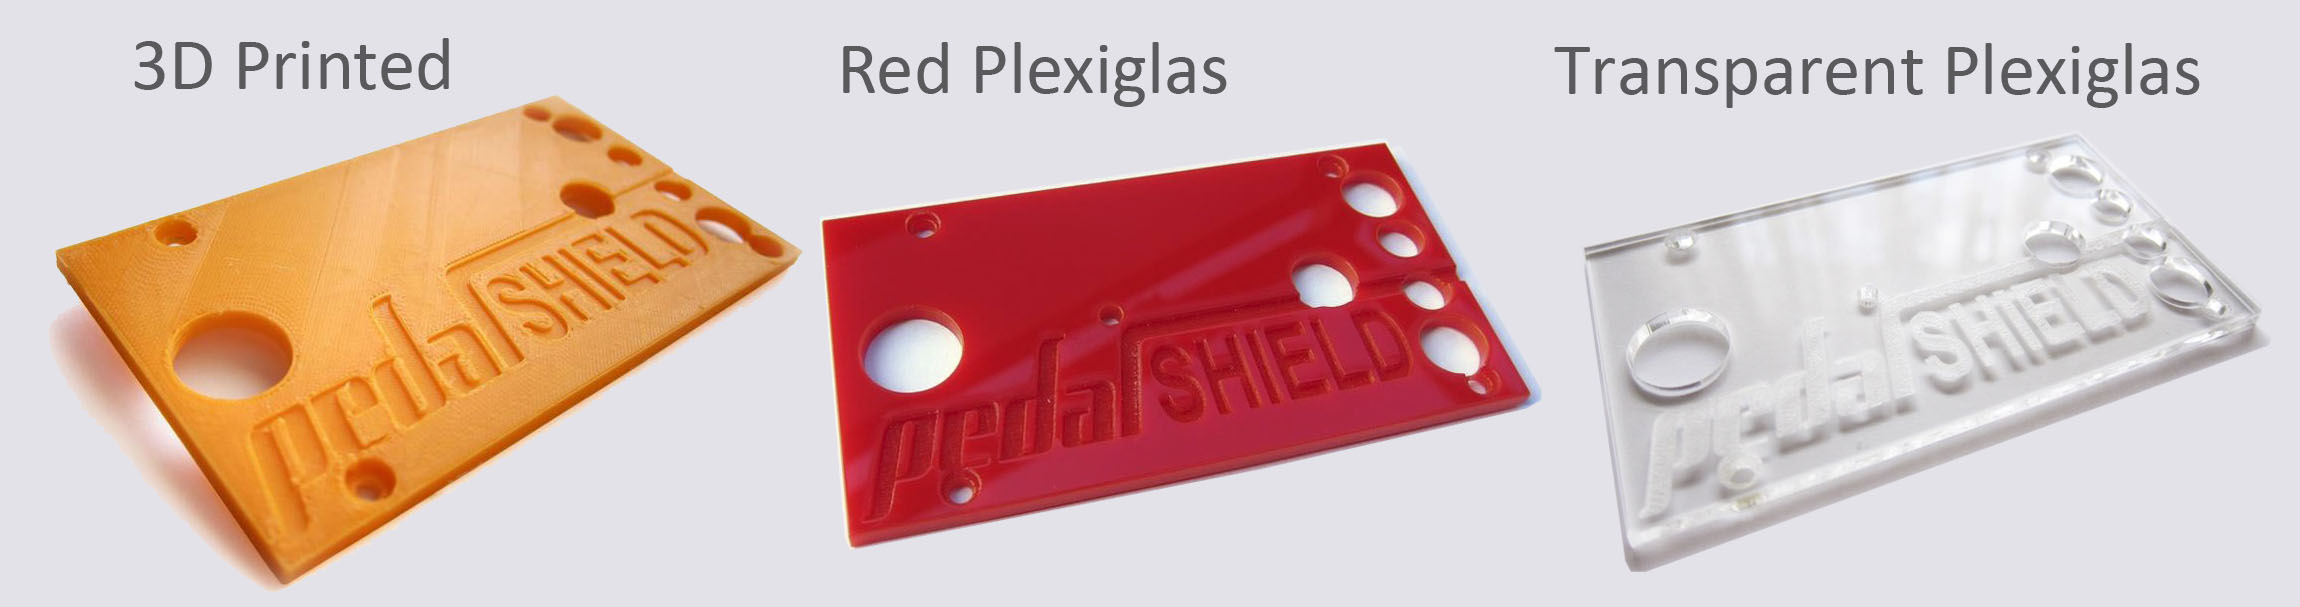 pedalSHIELD covers